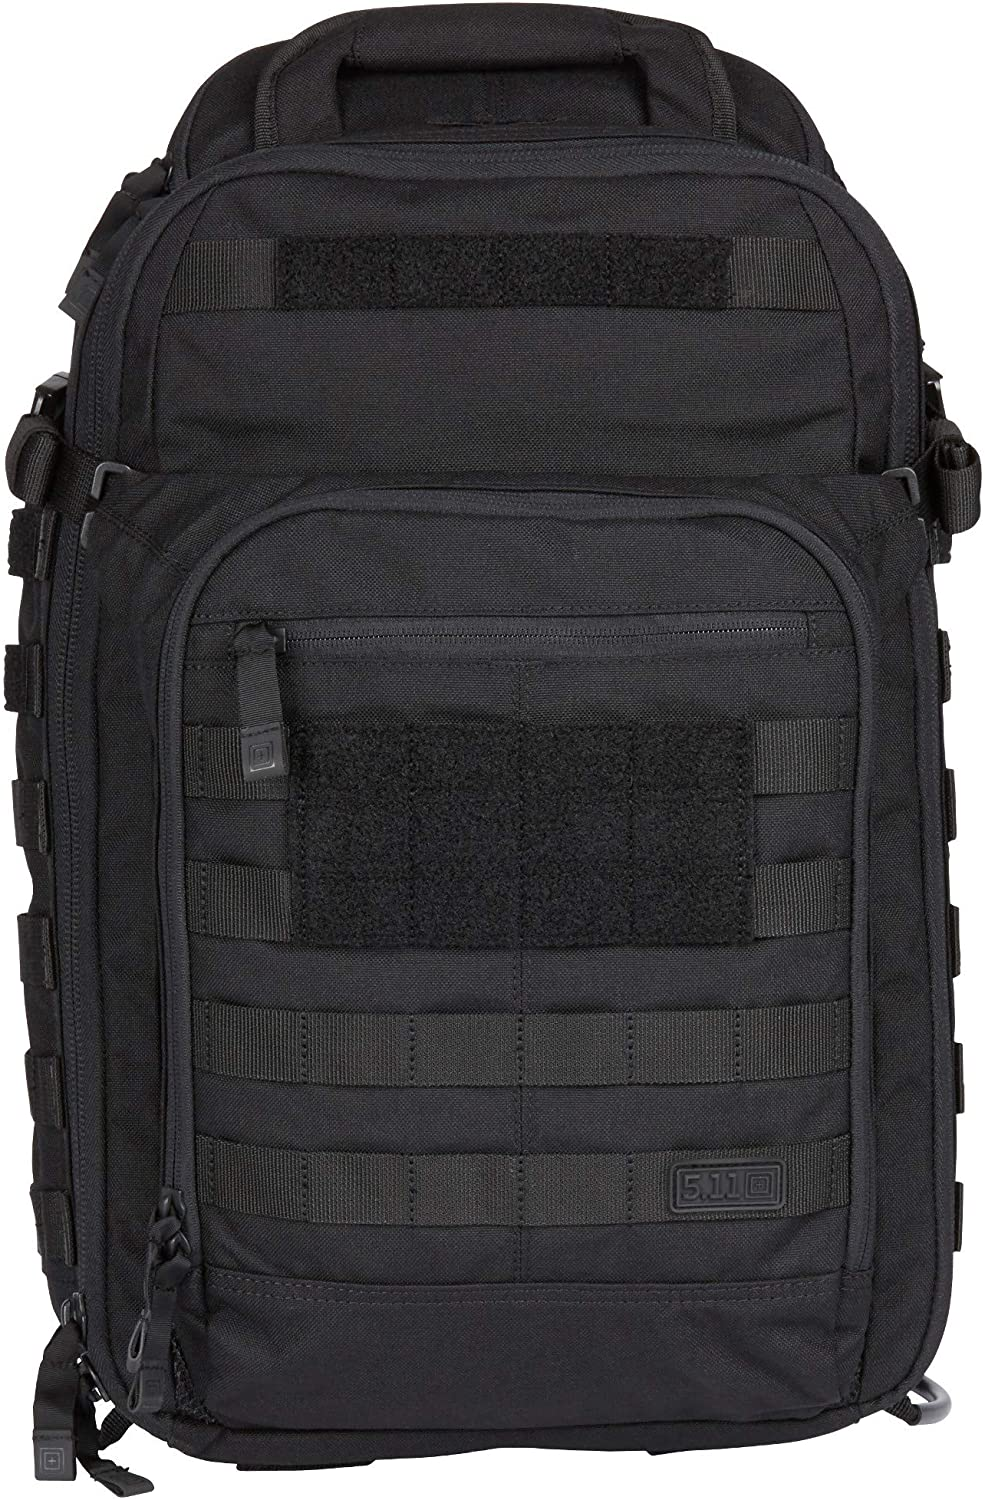 5.11 Tactical All Hazards Nitro Backpack, Nylon, 21-Liter Capacity, Gear Compatible, Style 56167